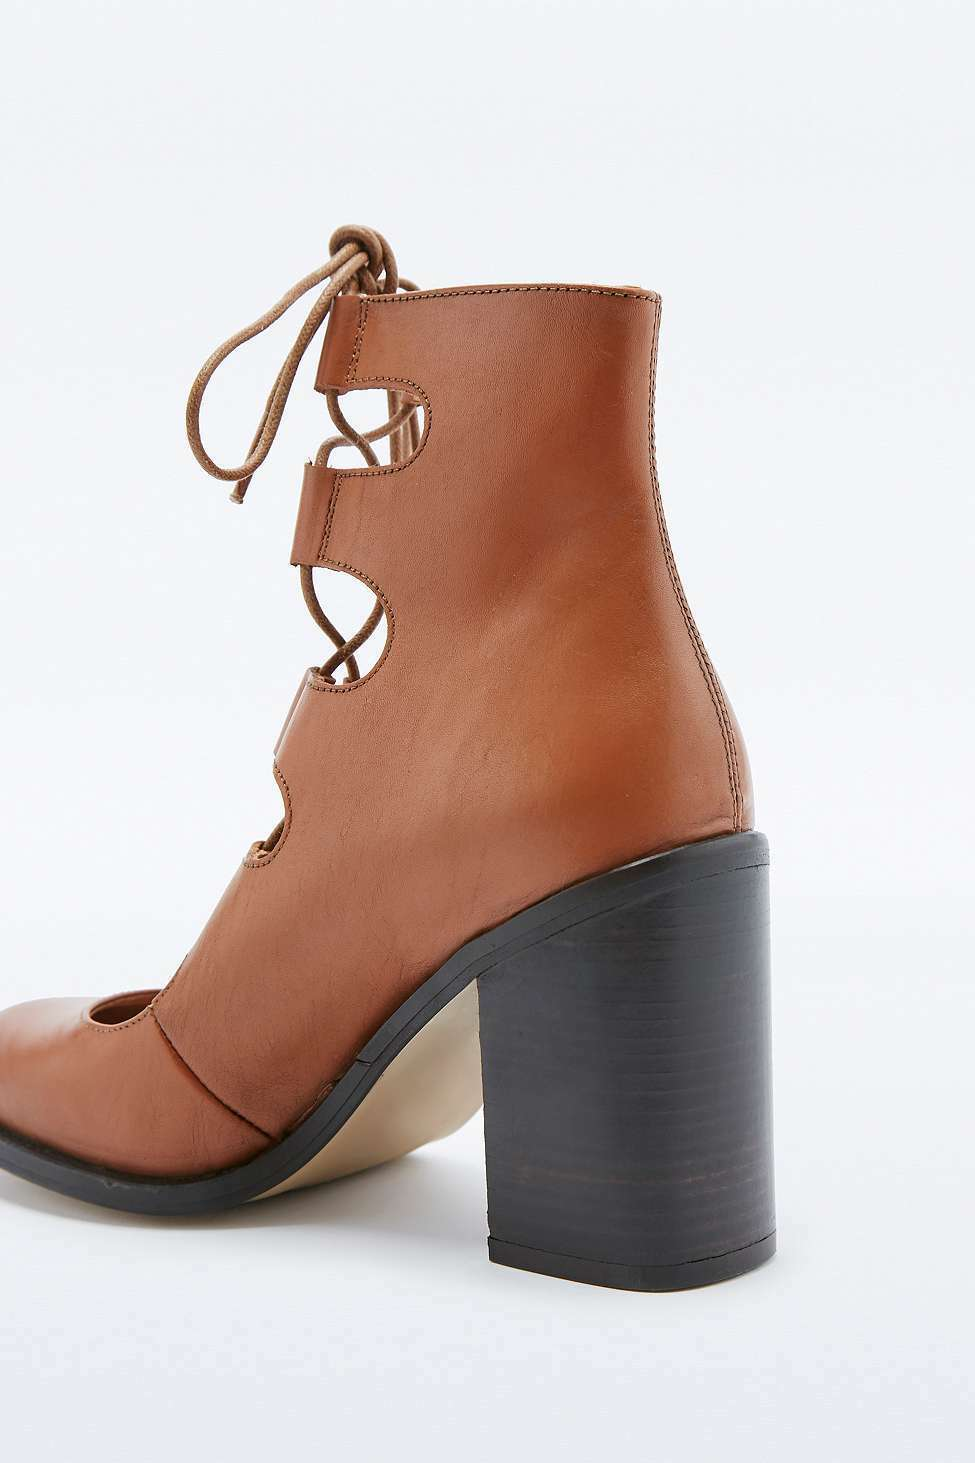 Urban Krista Outfitters Deena & Ozzy Krista Urban Tan Lace-Up Flare Heels - Braun - UK 7 5dcdc3